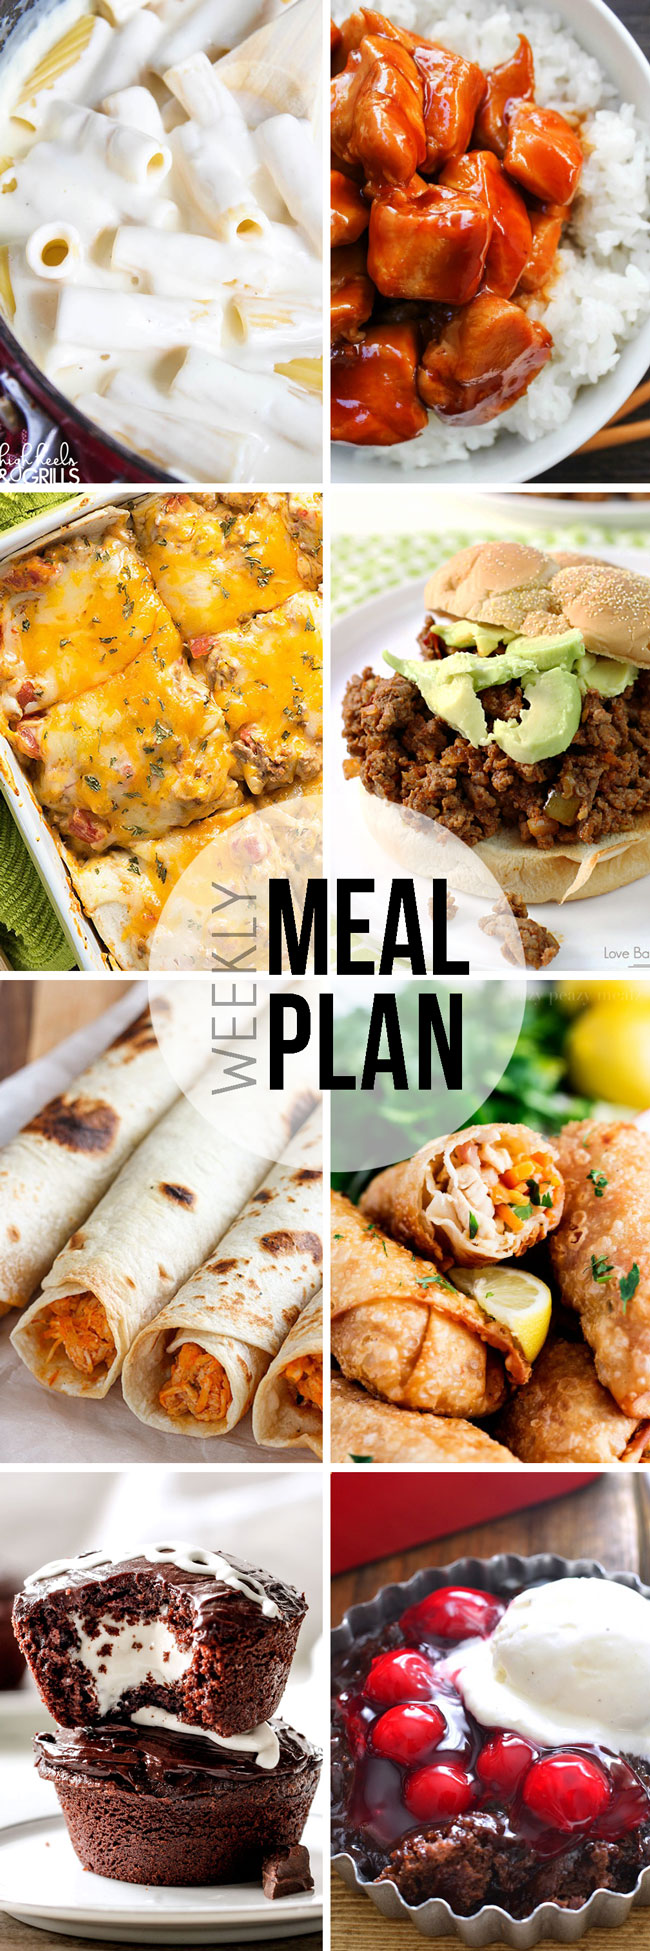 Meal-Plan---Pinterest-34